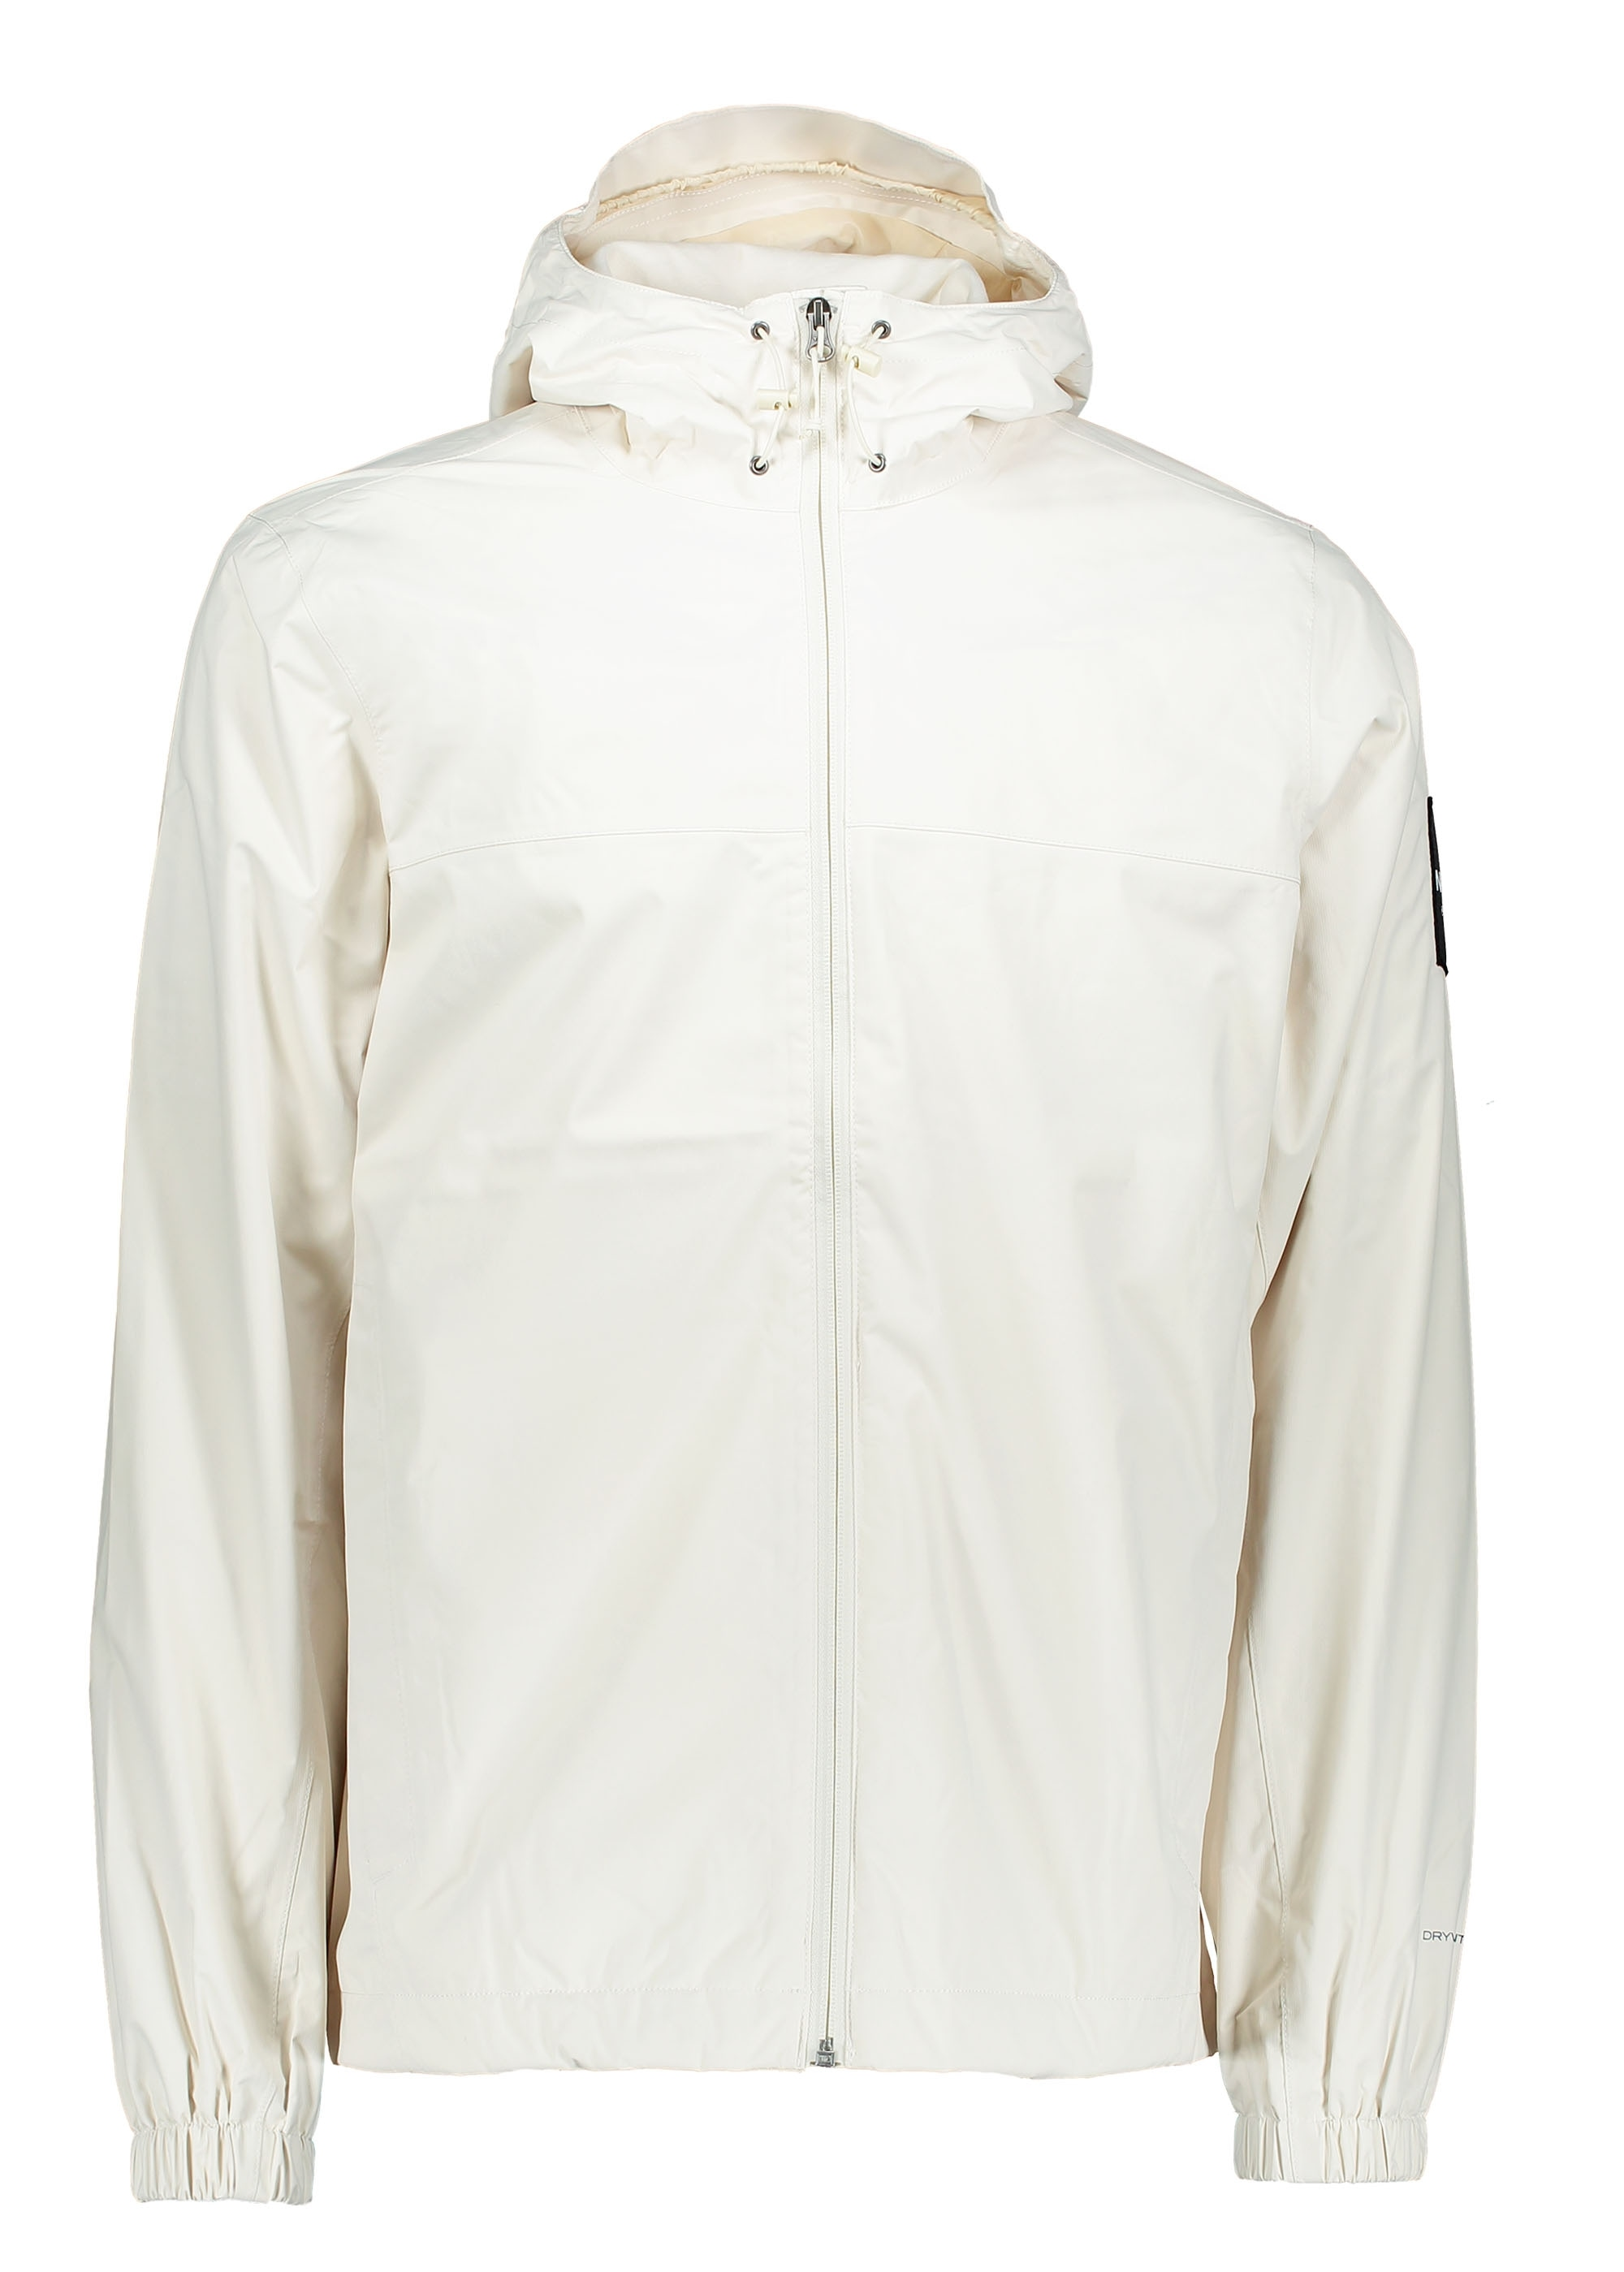 ed28c81f40e The North Face Mountain Q Jacket - Vintage White - Jackets from ...